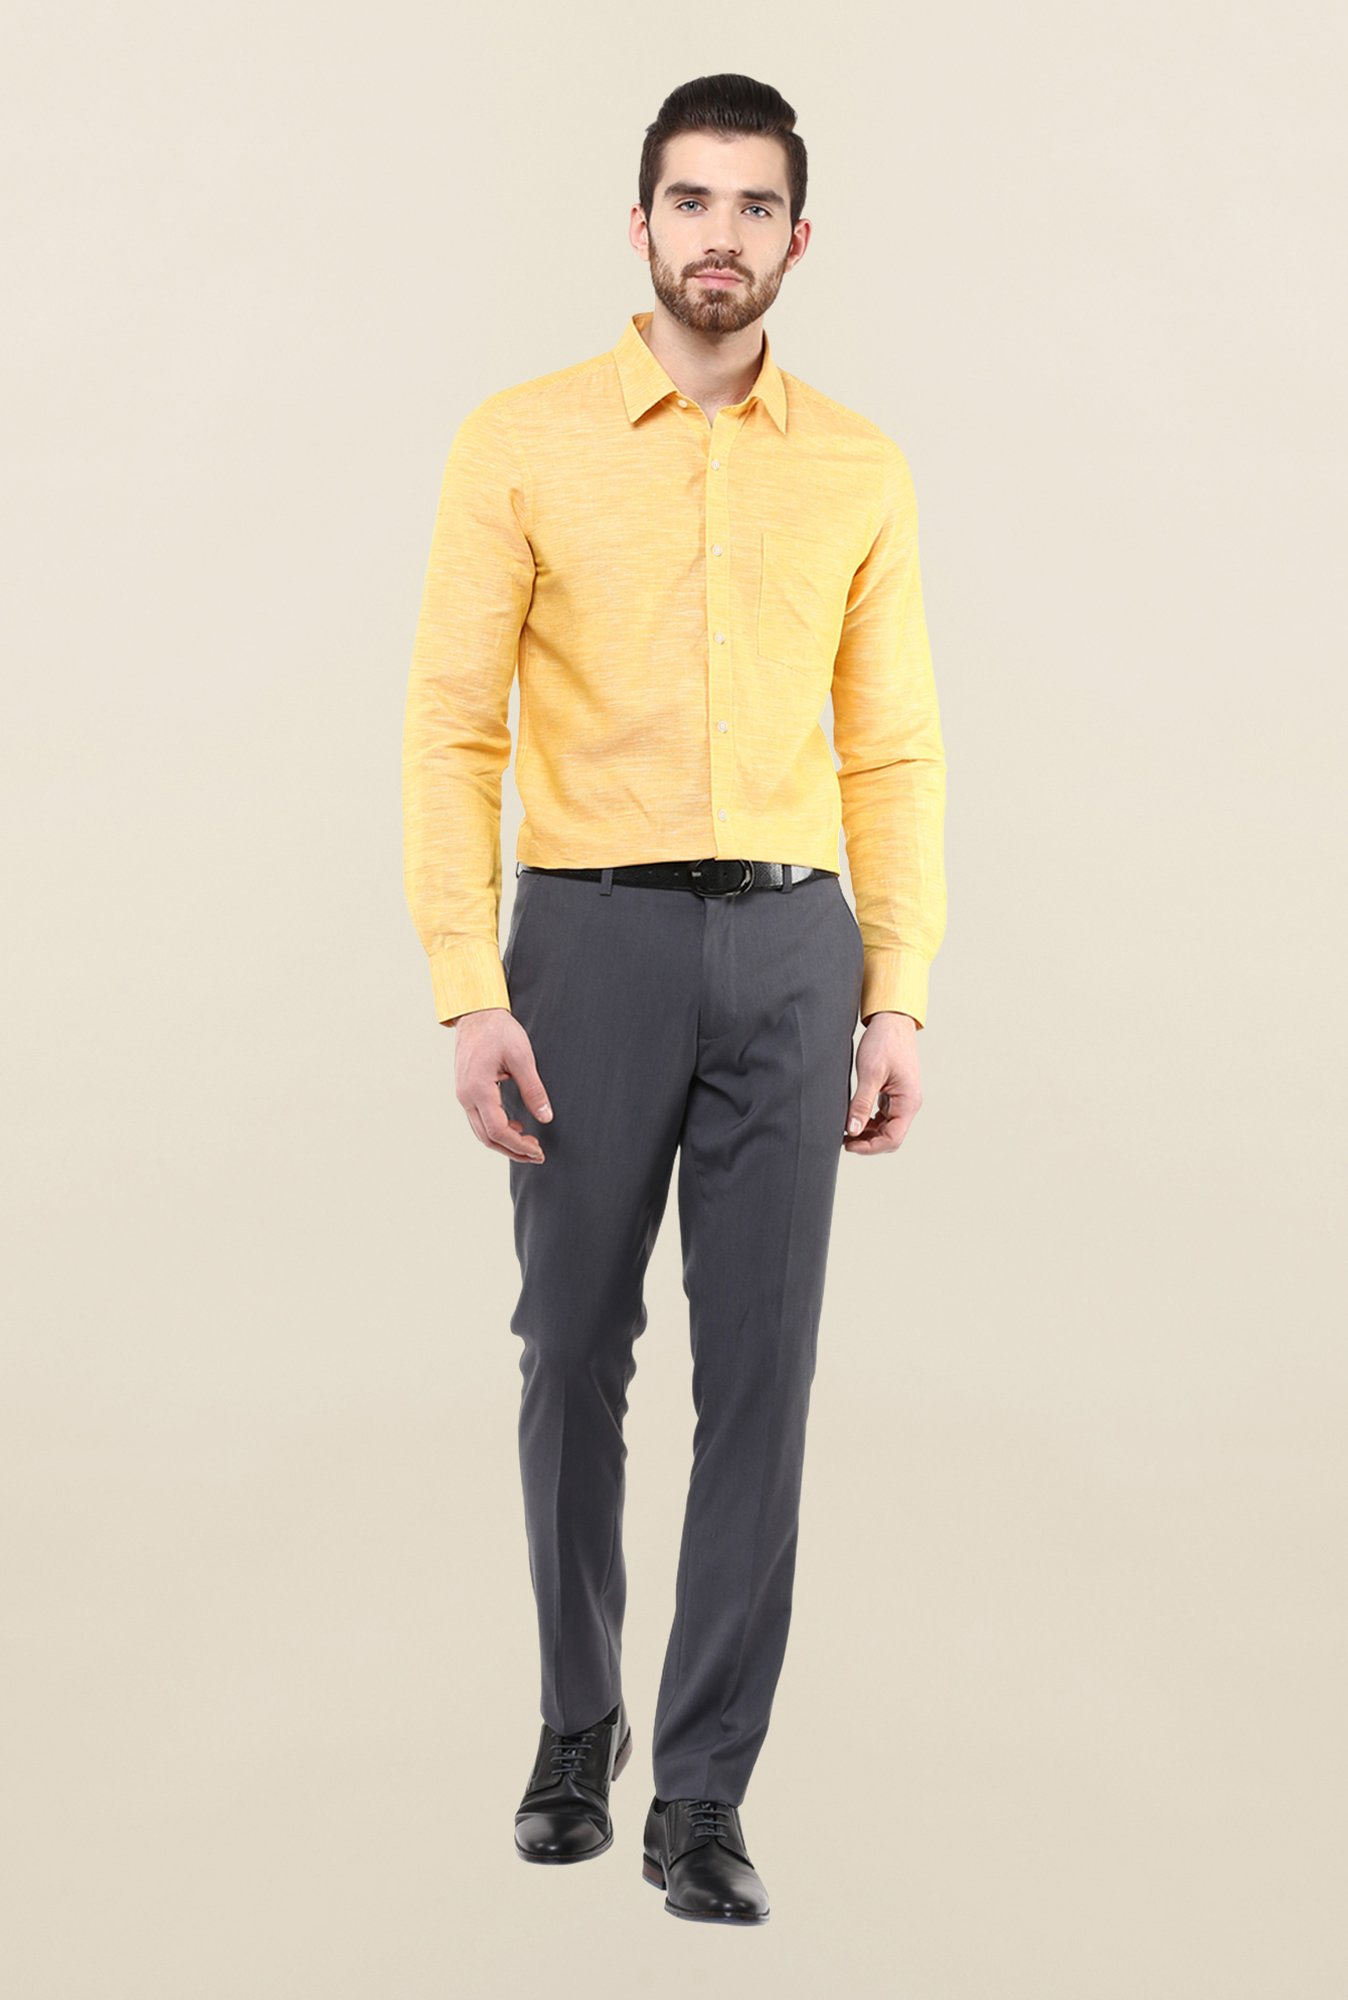 Turtle Yellow Solid Linen Formal Shirt